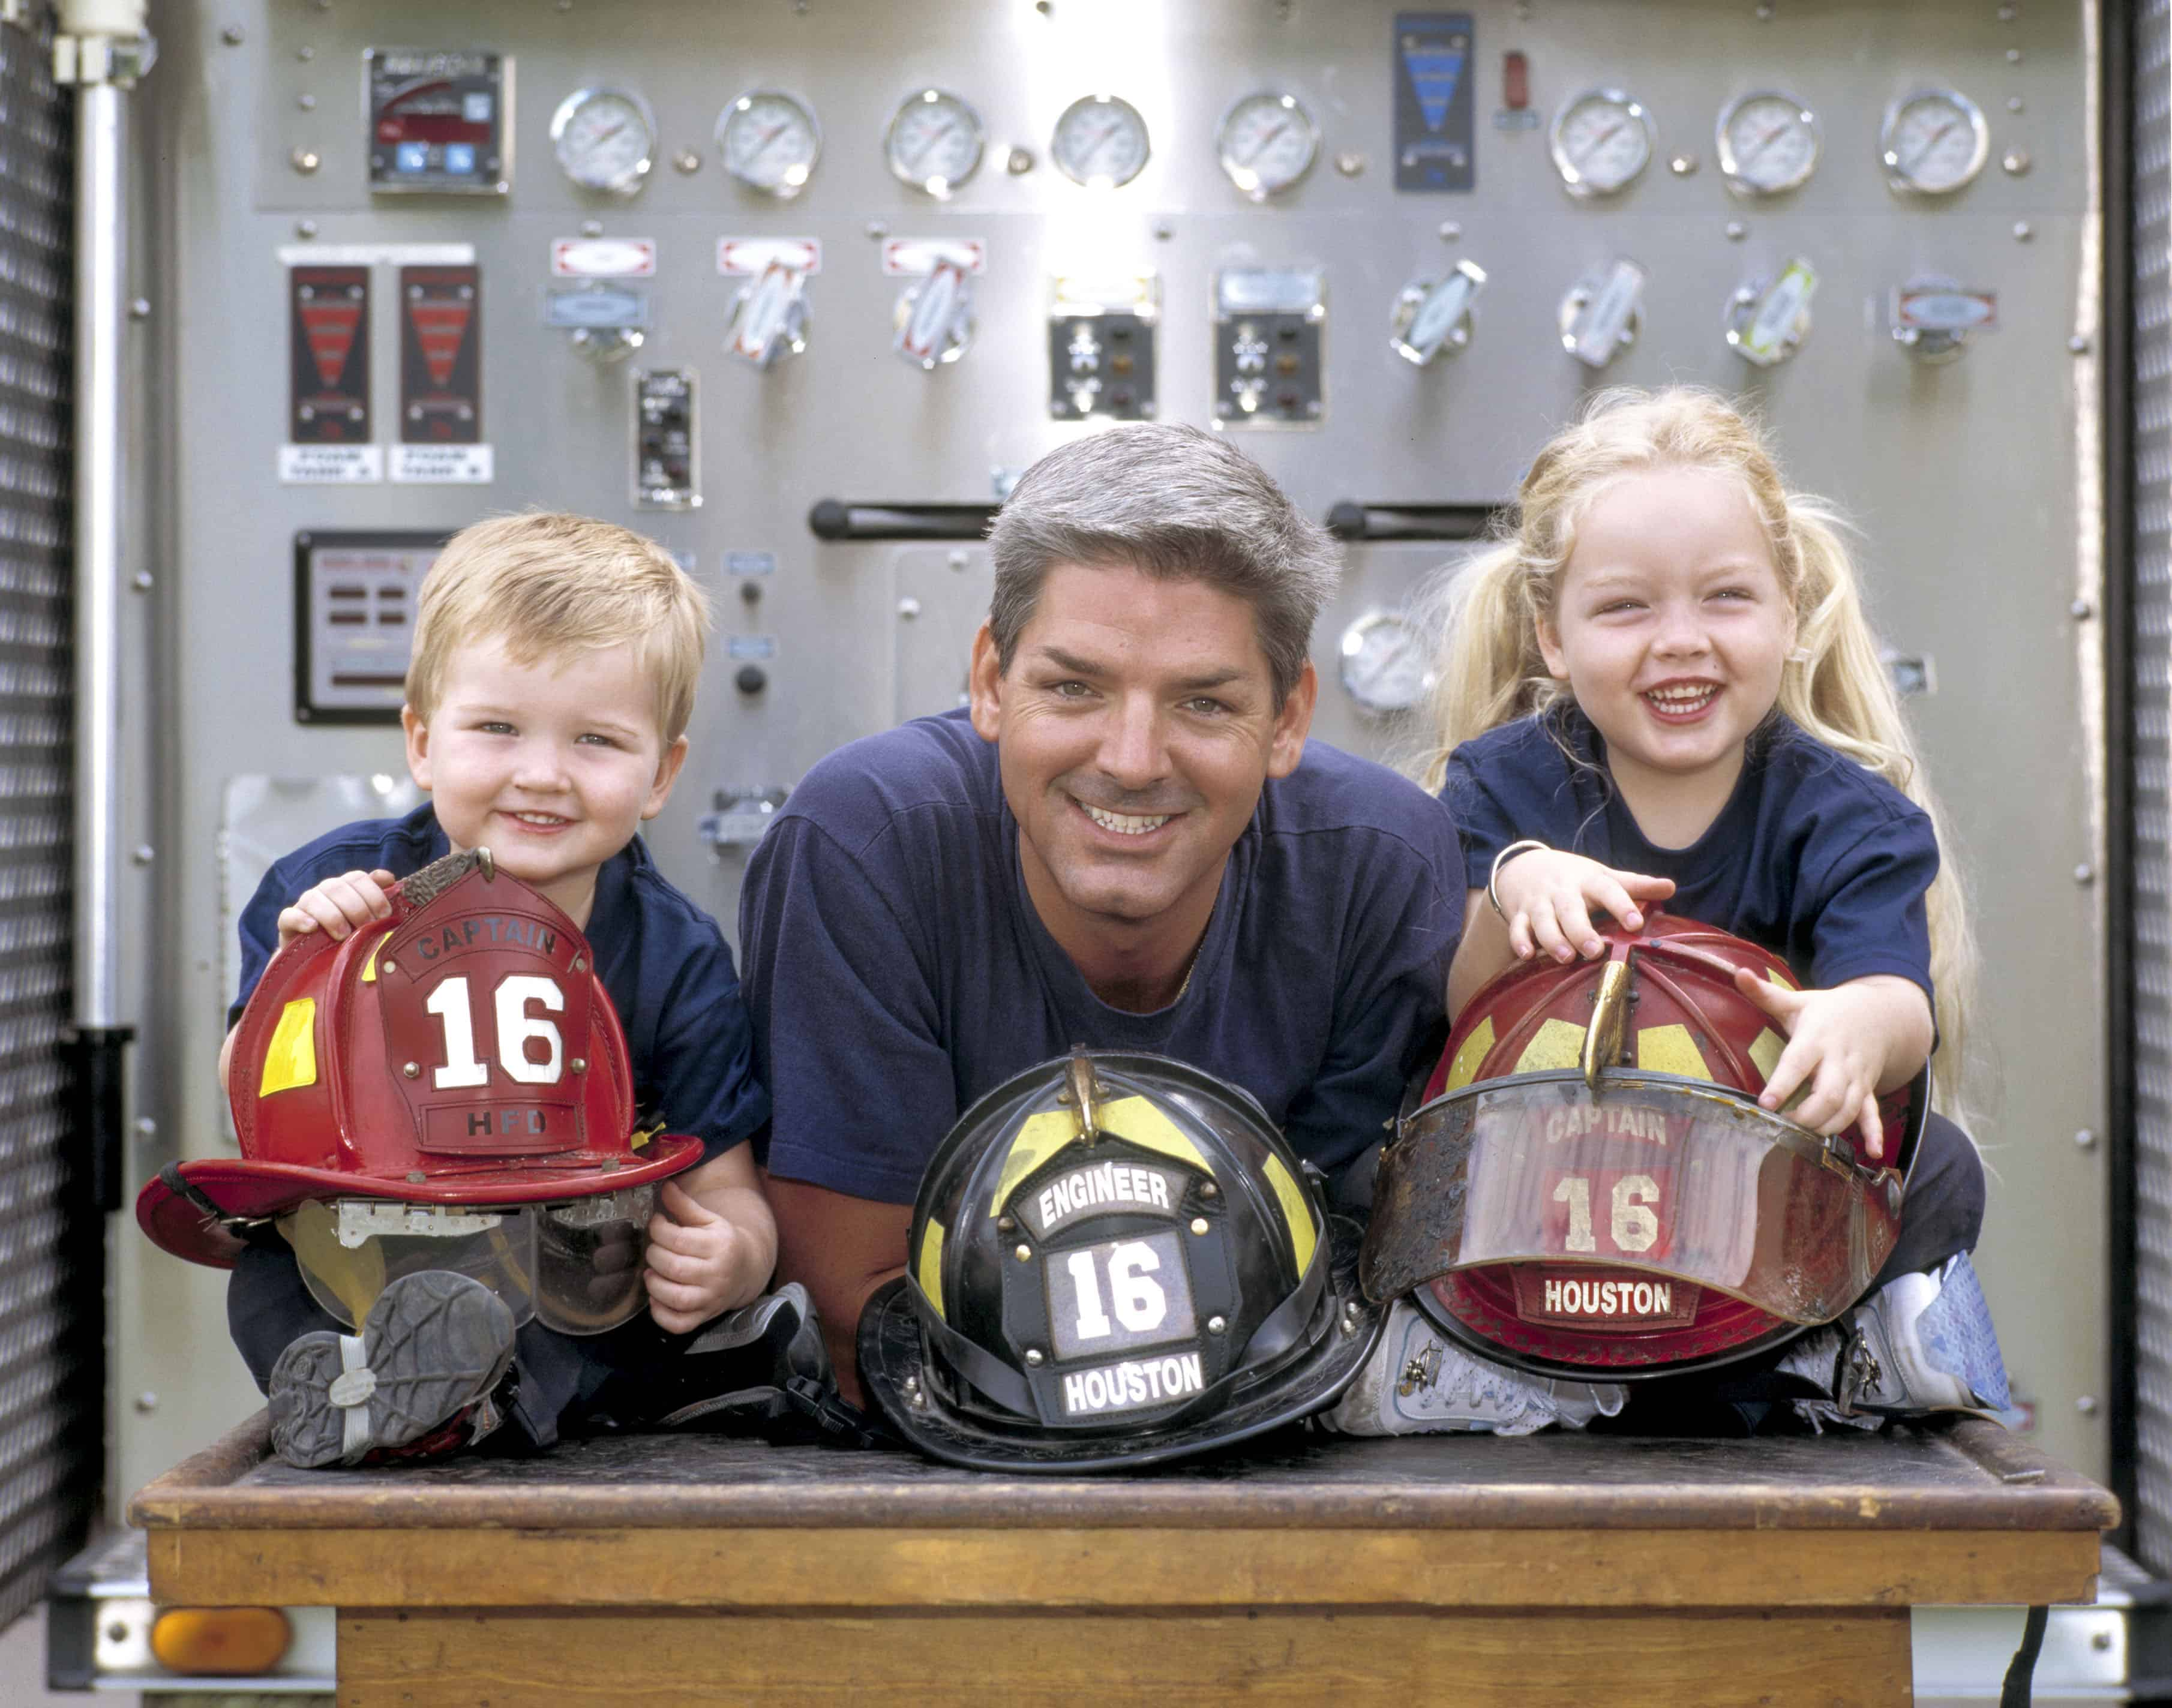 Houston_Firefighters_Family_photographed_by_Evin_Thayer